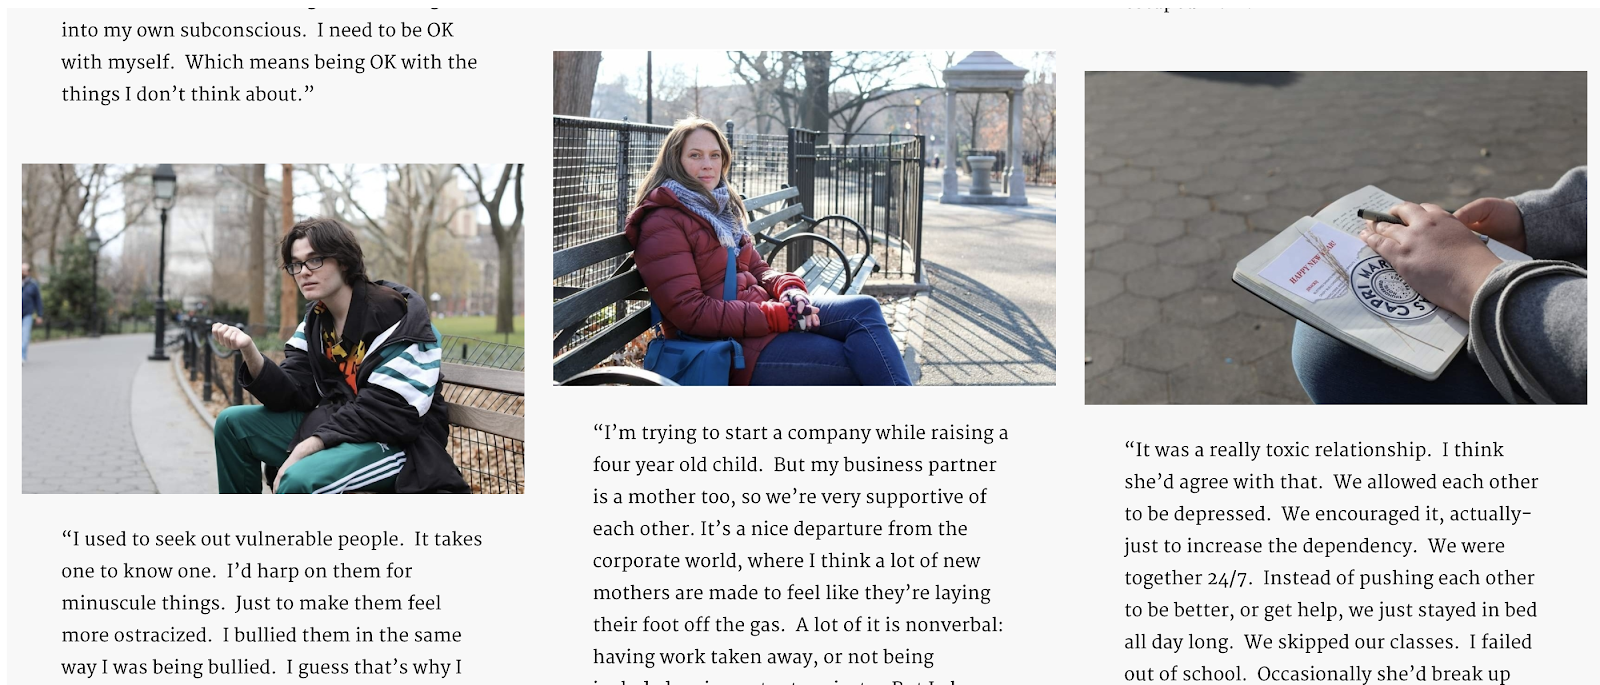 Humans of New York Blog Layout Screenshot (Stories Using Images Example)